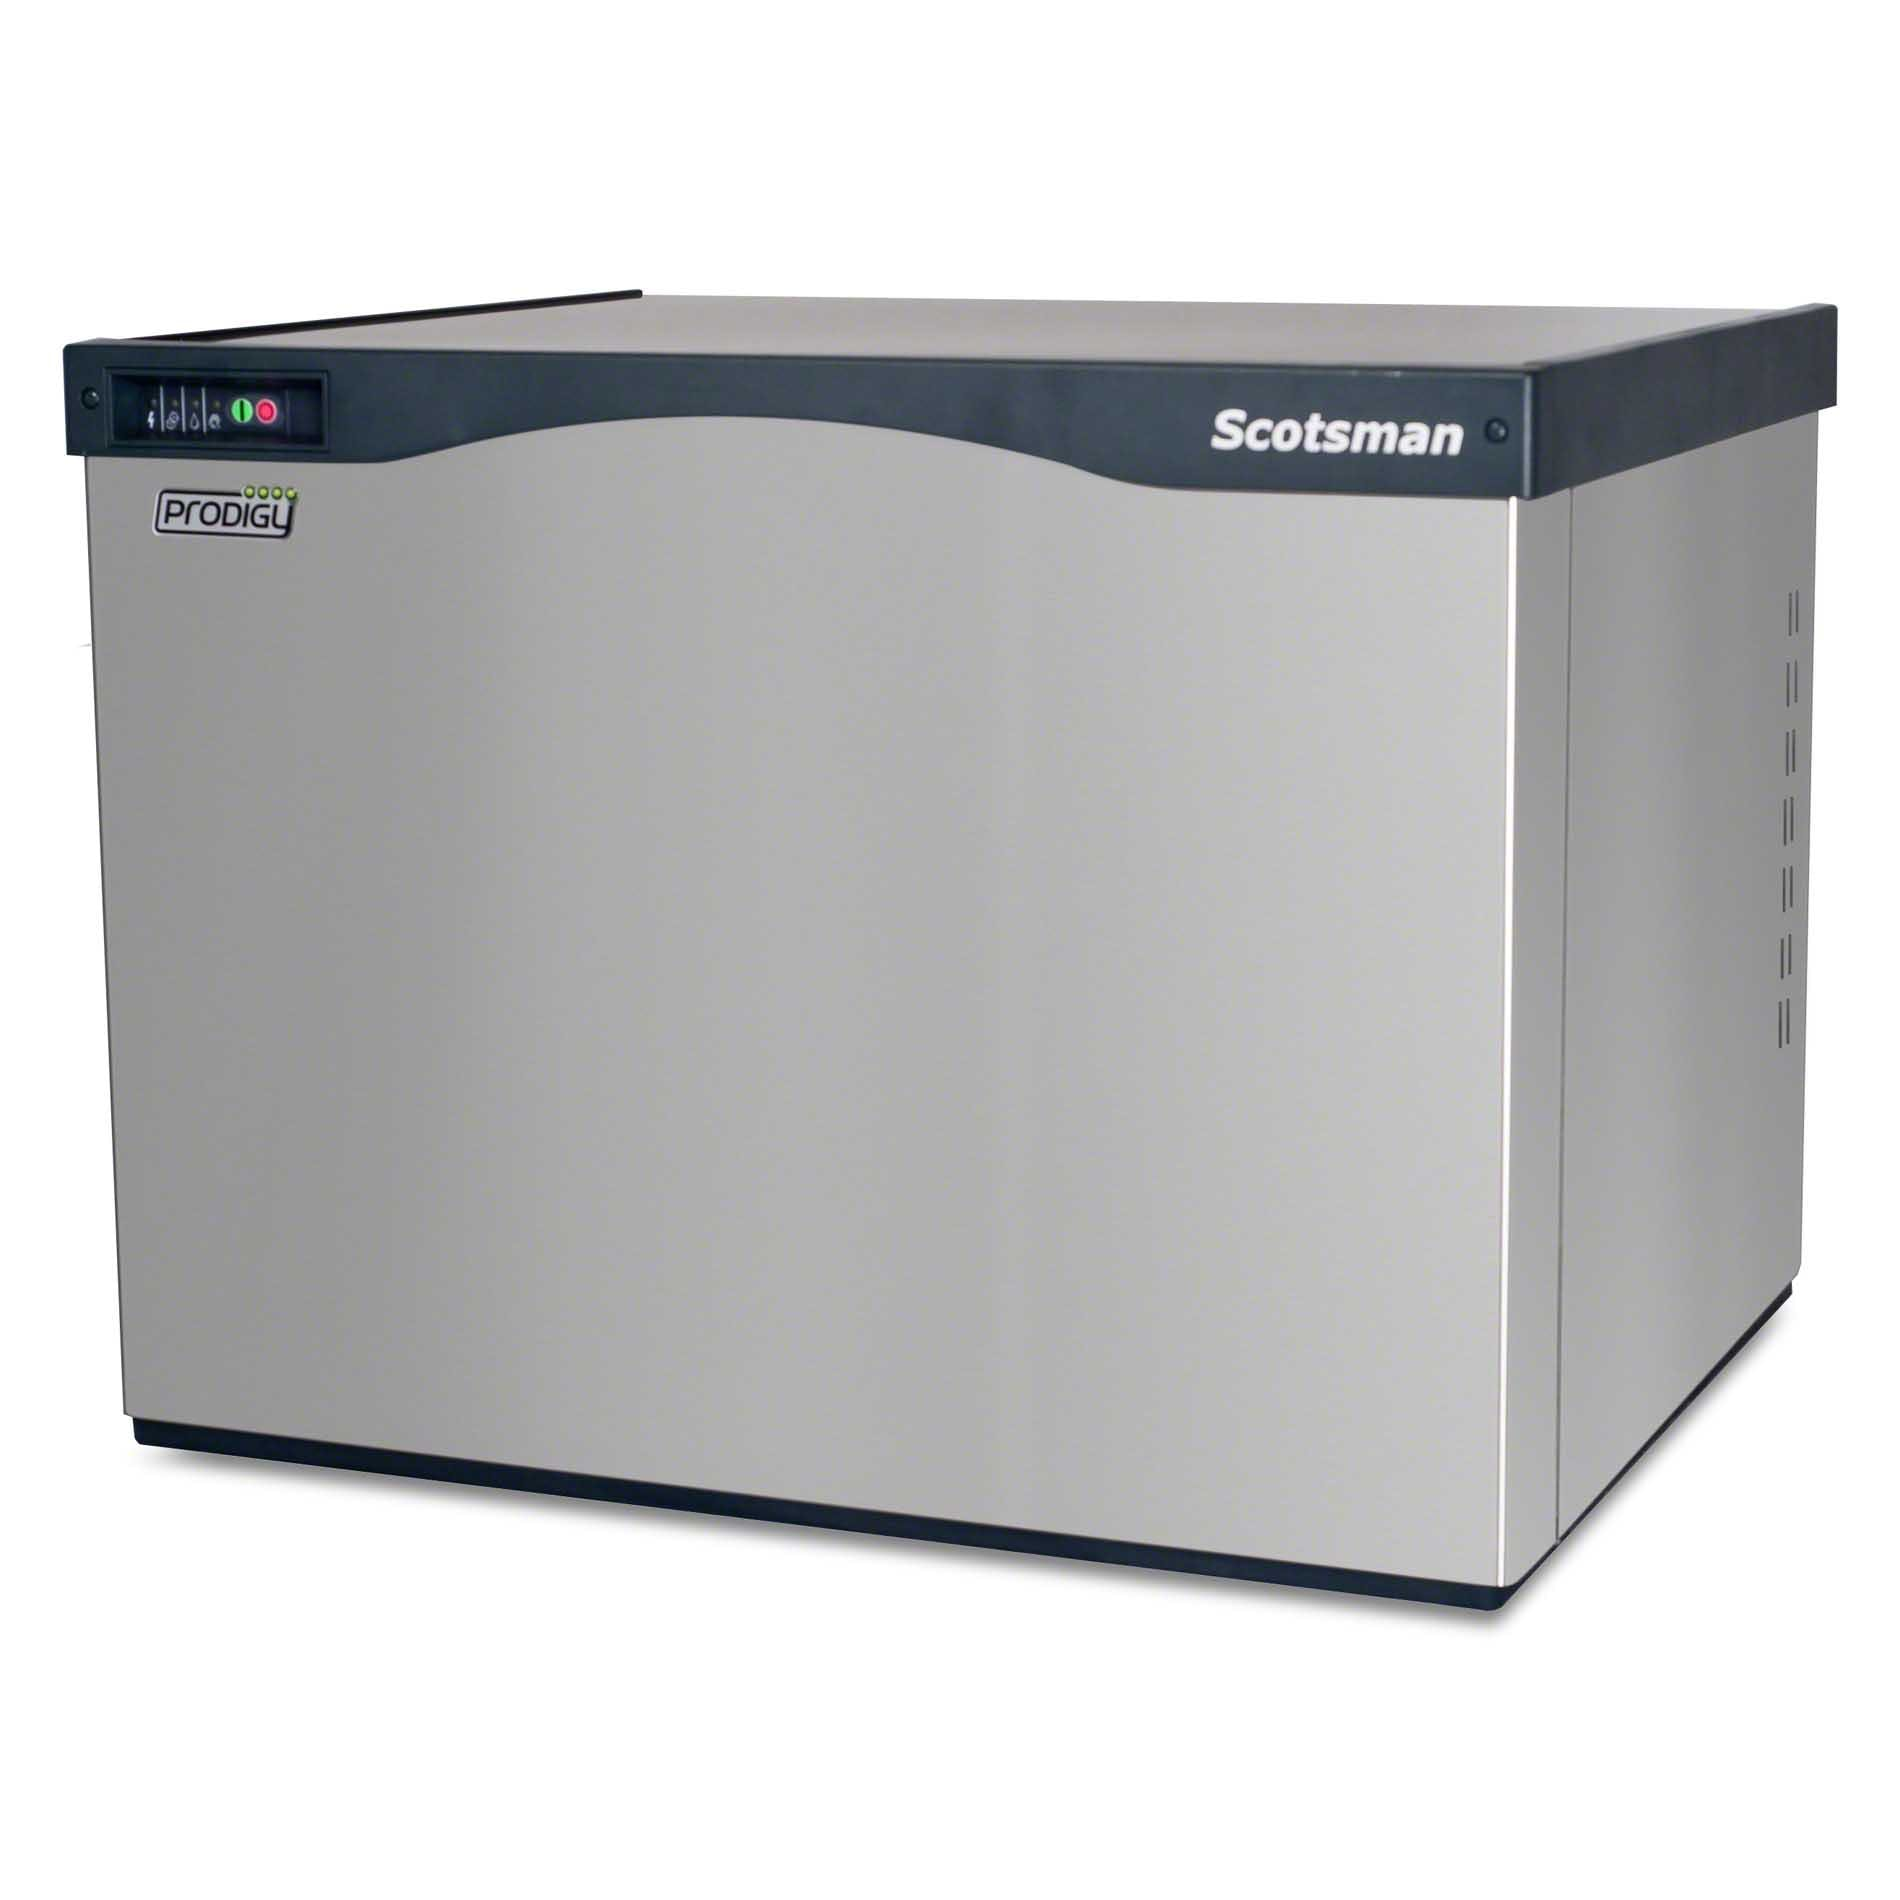 Scotsman - C0530MR-1A 511 lb Full Size Cube Ice Machine - Prodigy Series - sold by Food Service Warehouse